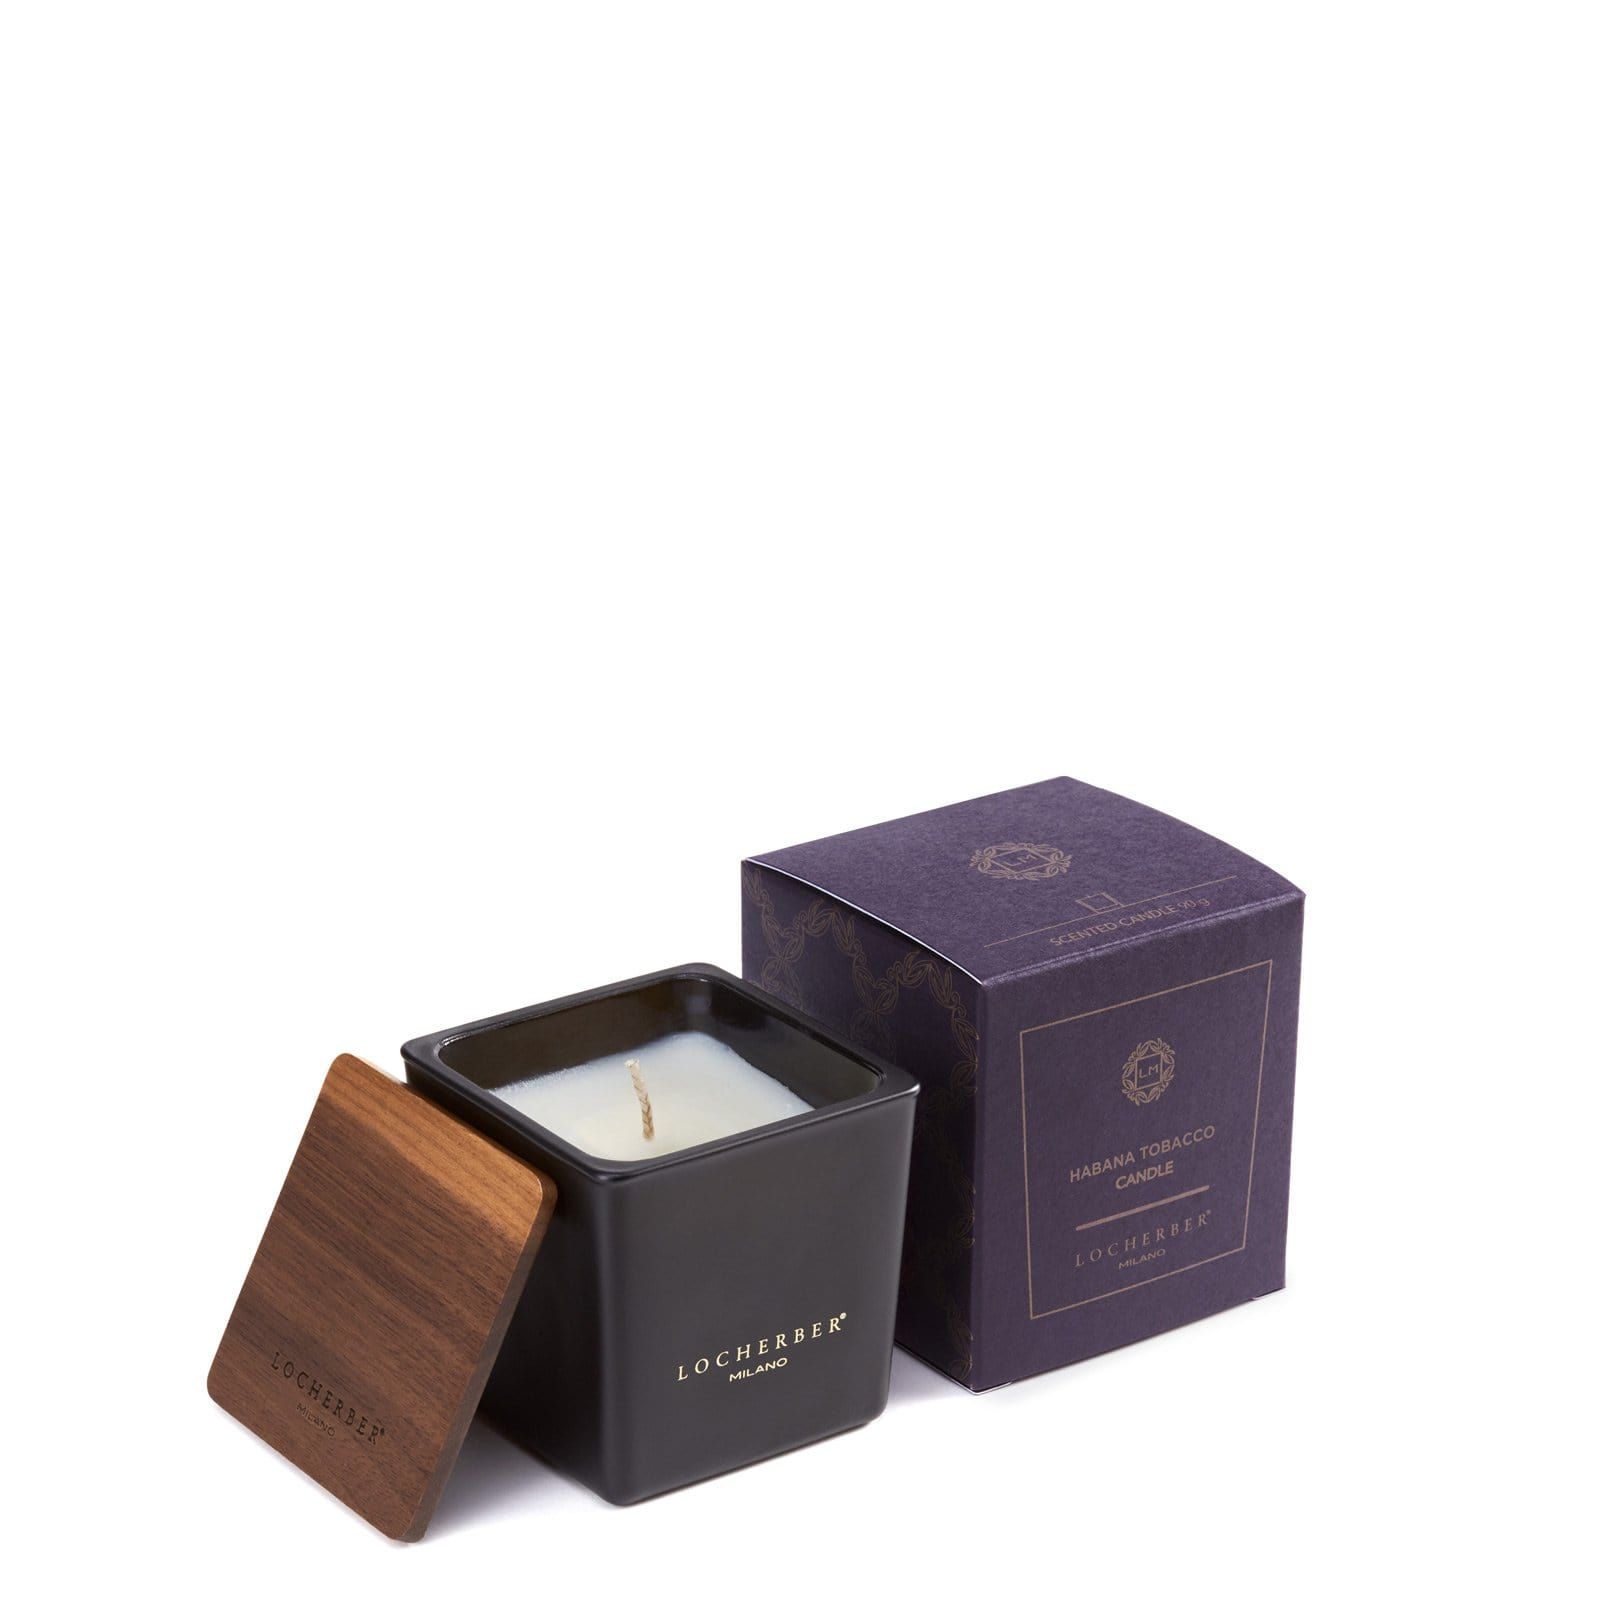 Habana Tobacco Scented Candle (2 Sizes)